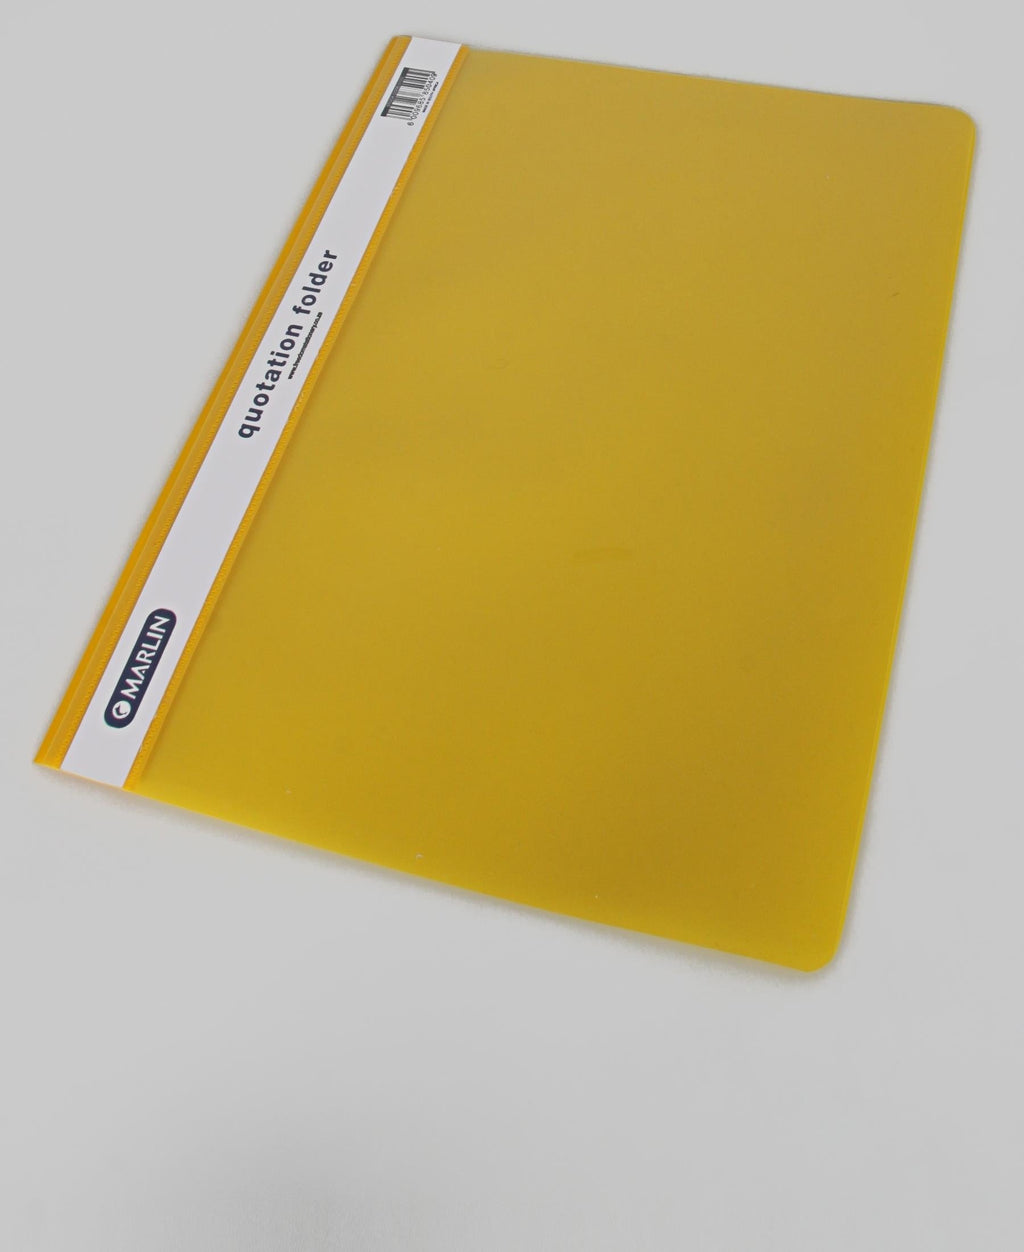 Marlin Quotation Folder - Yellow